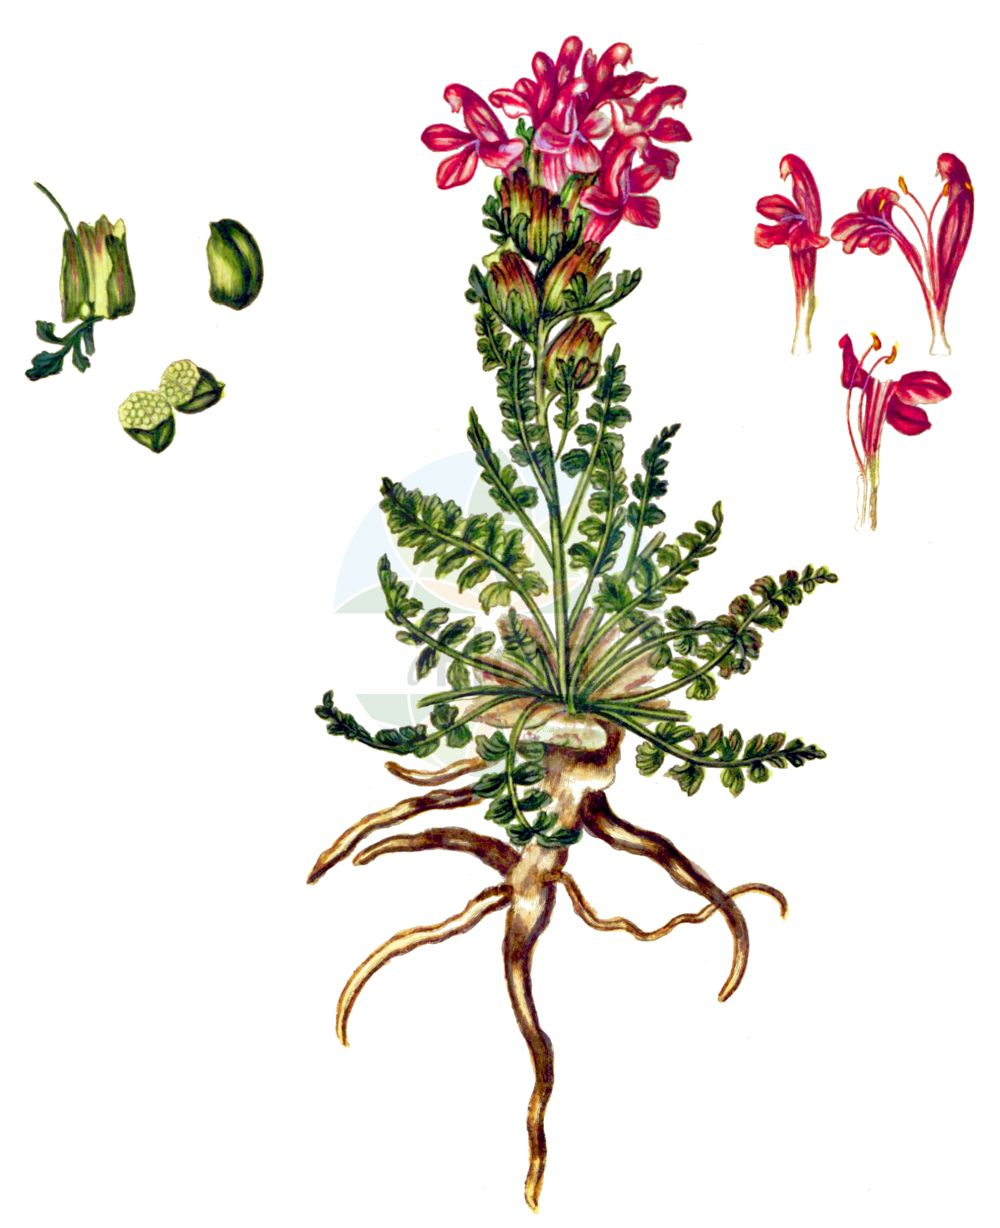 Historische Abbildung von Pedicularis sylvatica (Wald-Laeusekraut - Lousewort). Das Bild zeigt Blatt, Bluete, Frucht und Same. ---- Historical Drawing of Pedicularis sylvatica (Wald-Laeusekraut - Lousewort).The image is showing leaf, flower, fruit and seed.(Pedicularis sylvatica,Wald-Laeusekraut,Lousewort,Pedicularis sylvatica,Wald-Laeusekraut,Lousewort,Common Lousewort,Pedicularis,Laeusekraut,Lousewort,Orobanchaceae,Sommerwurzgewaechse,Broomrape family,Blatt,Bluete,Frucht,Same,leaf,flower,fruit,seed,Oeder (1761-1883))